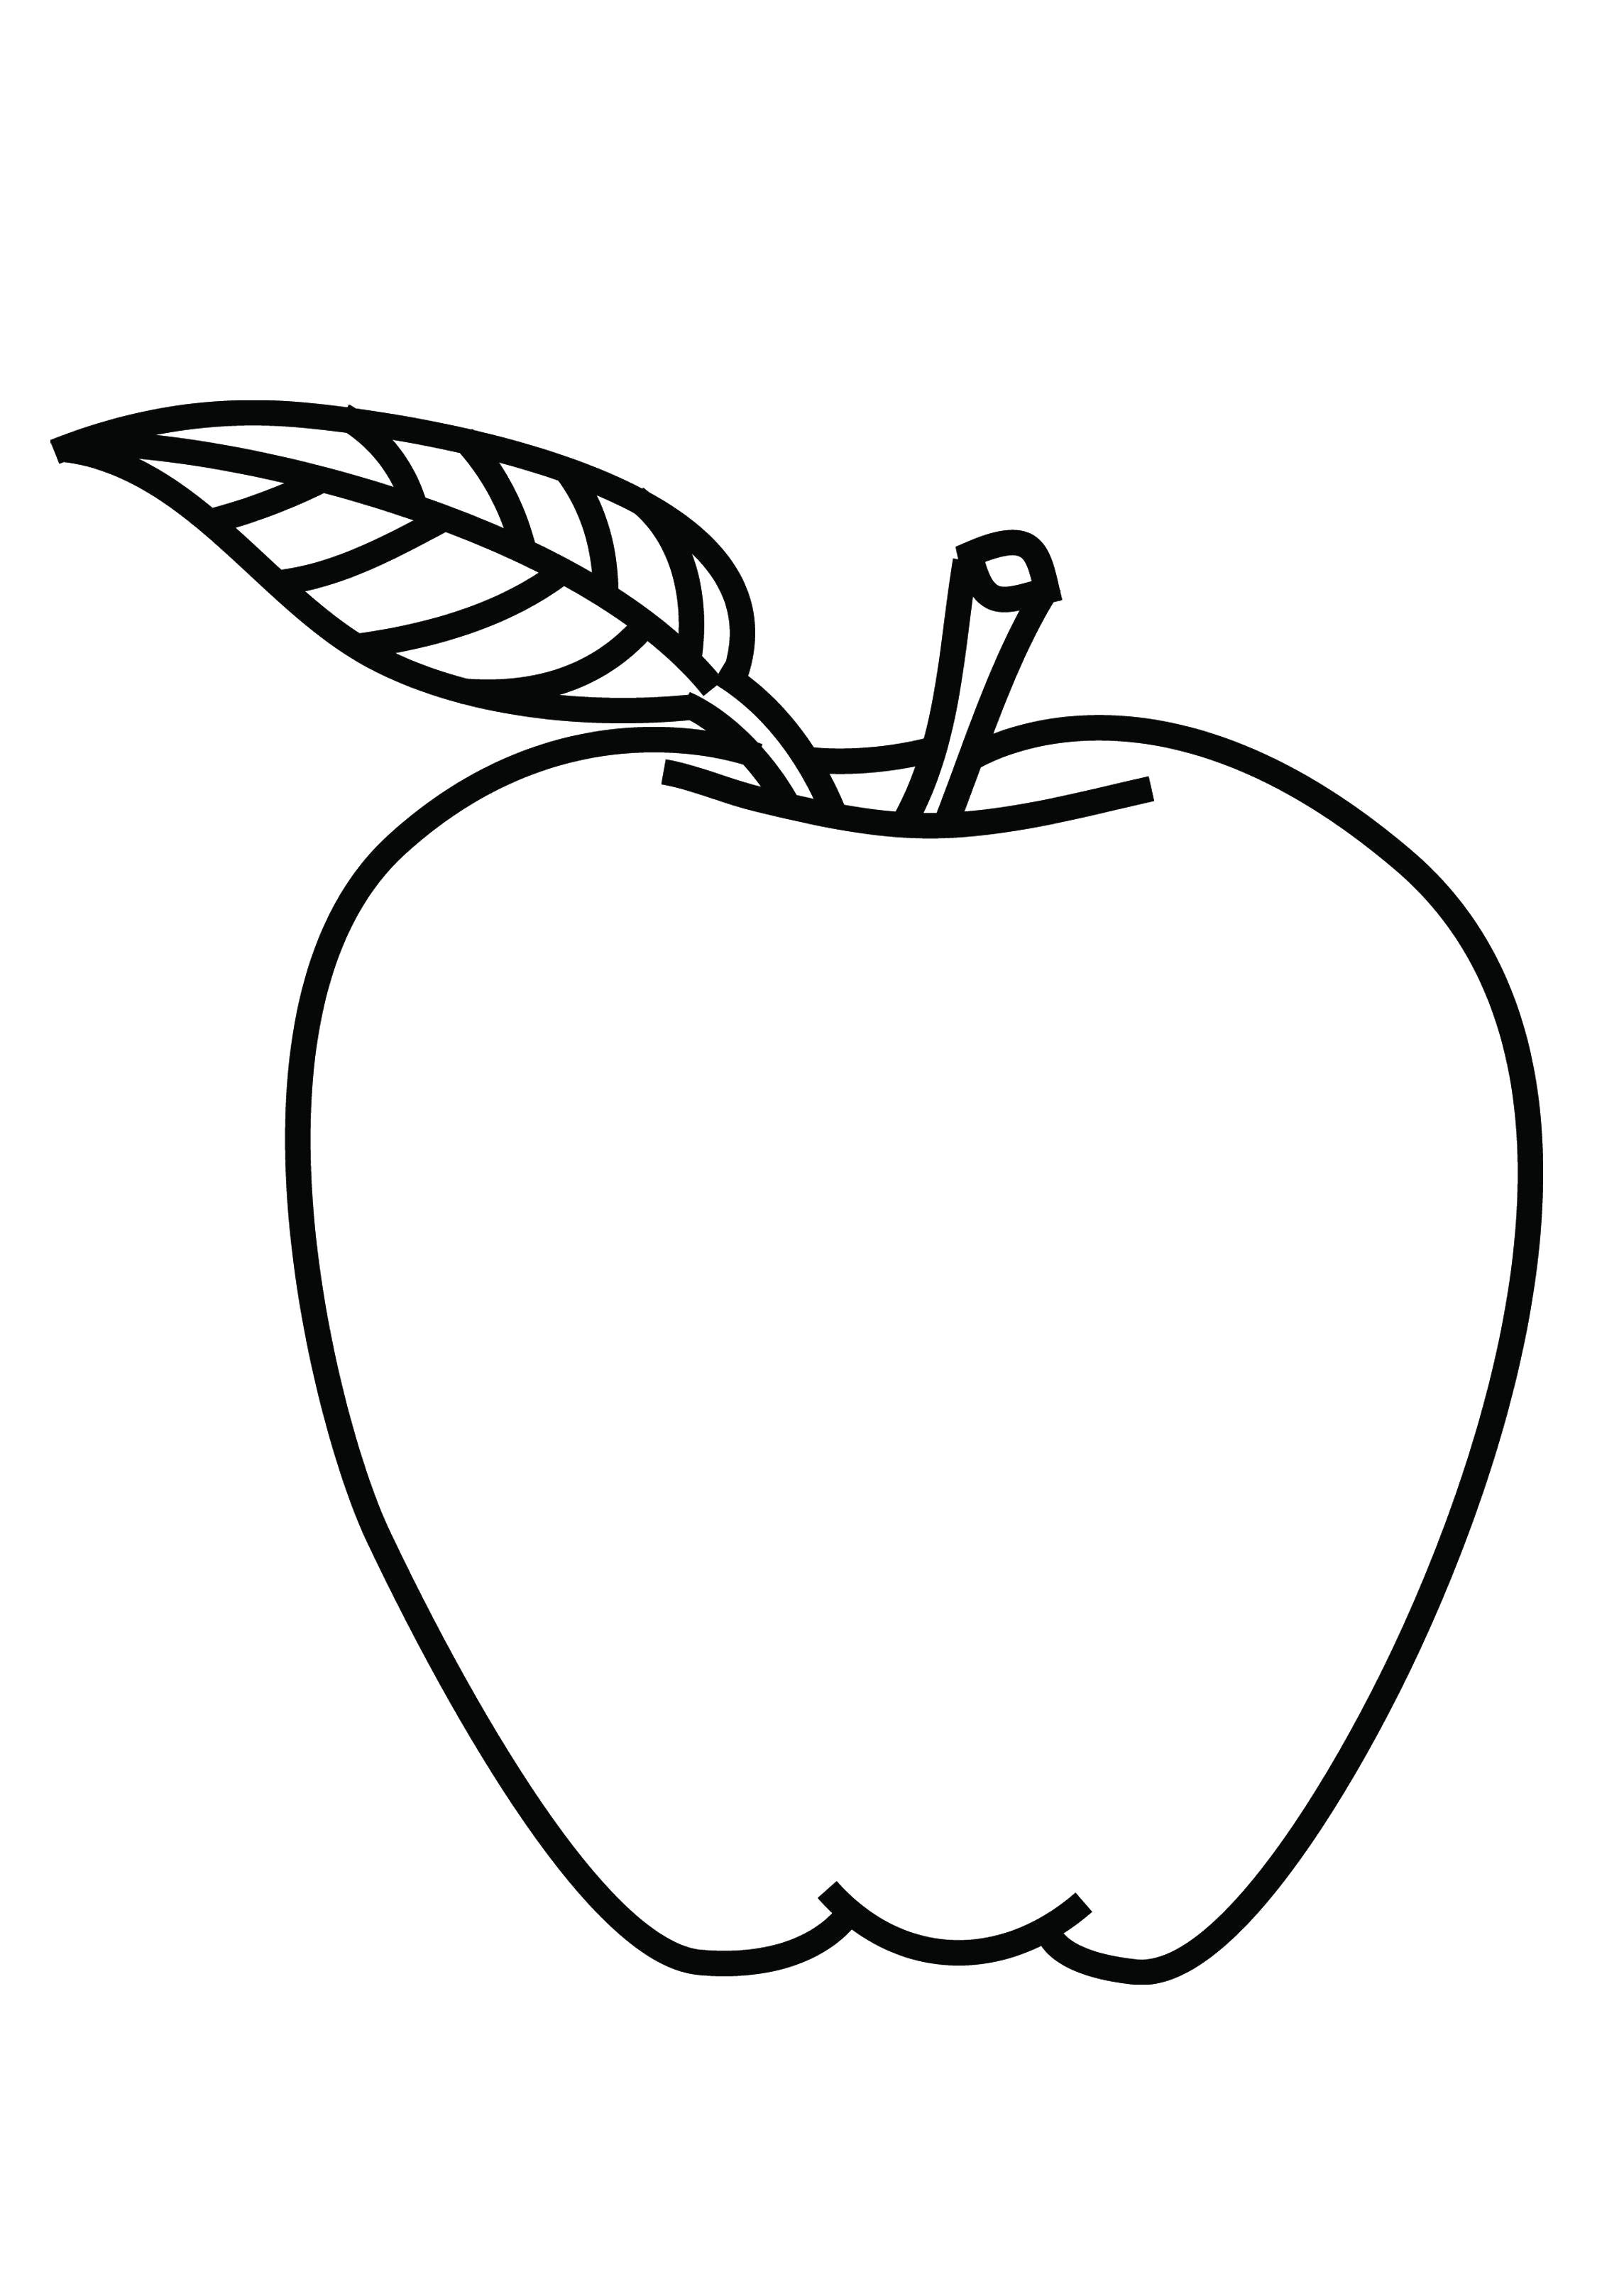 coloring image of an apple free printable apple coloring pages for kids image coloring of an apple